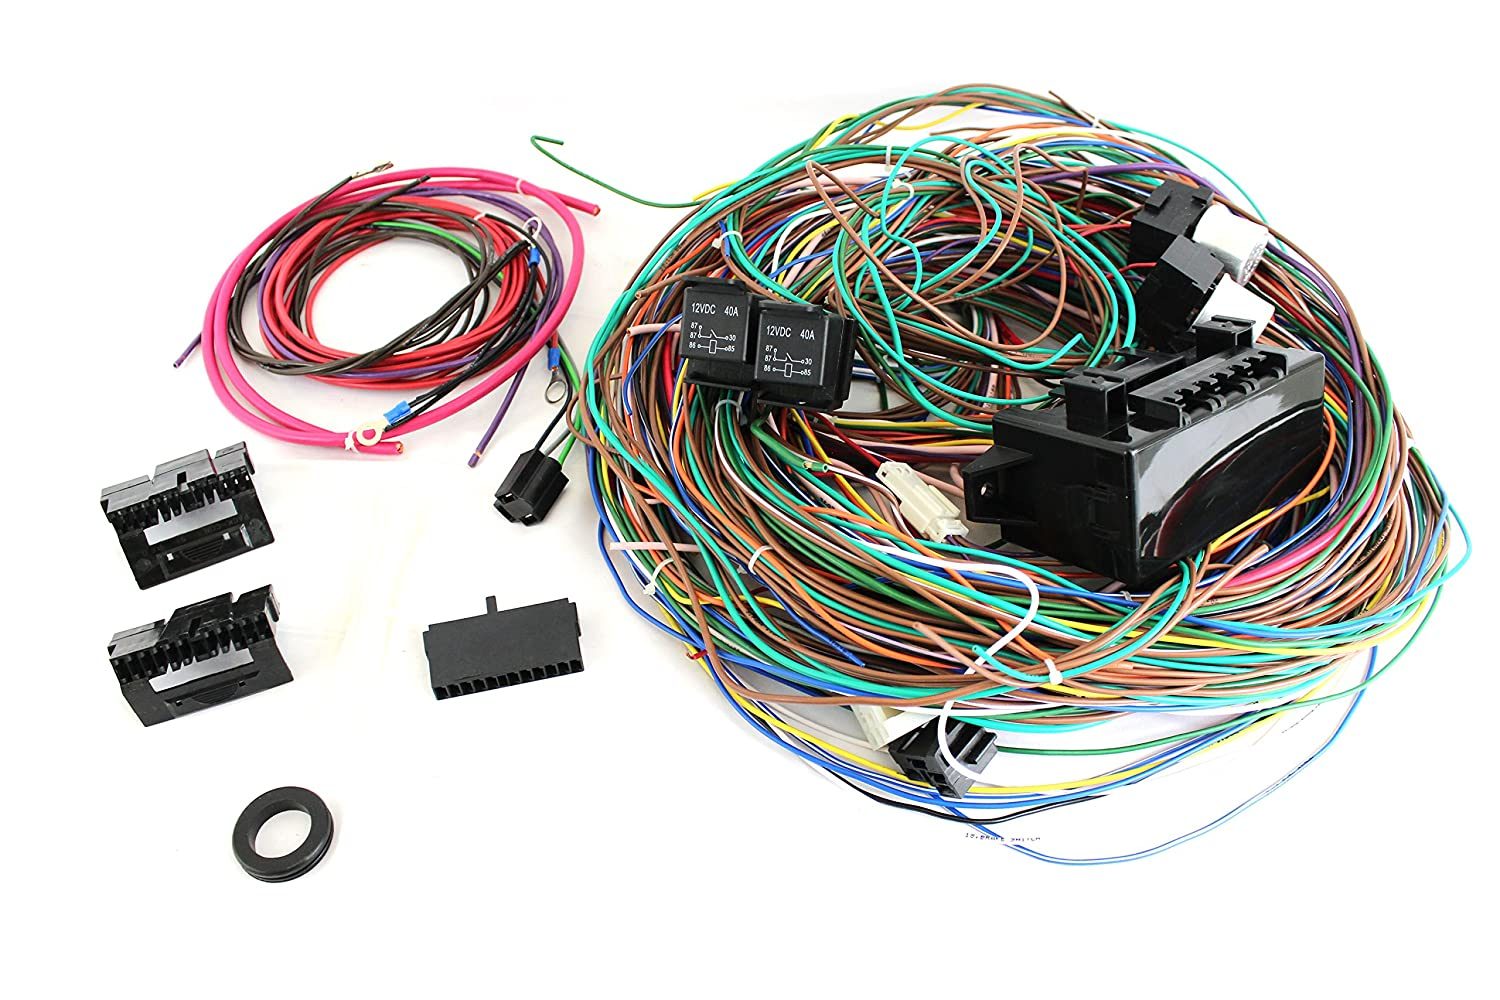 91YoamXFx2L._SL1500_ amazon com 12v 24 circuit 15 fuse street hot rat rod wiring street rod wiring harness kit at readyjetset.co